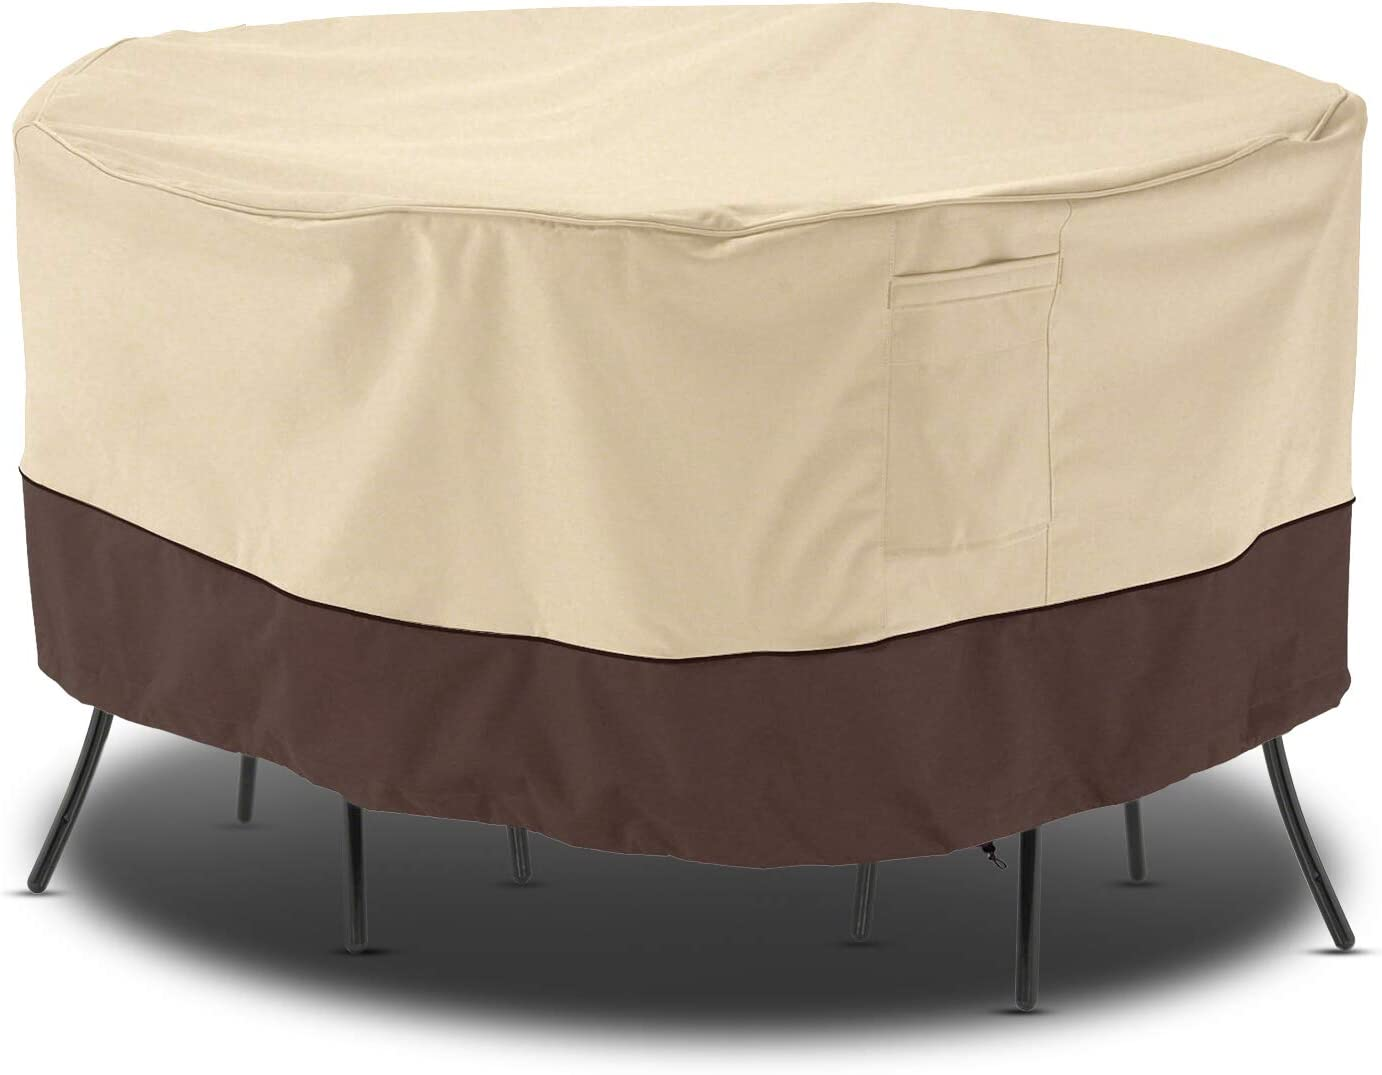 Arcedo Patio Furniture Set Cover, Outdoor Round Table and Chair Cover, Heavy Duty Waterproof Lawn Dining Table Cover with Buckled Strap, Dustproof and Sunproof, 84